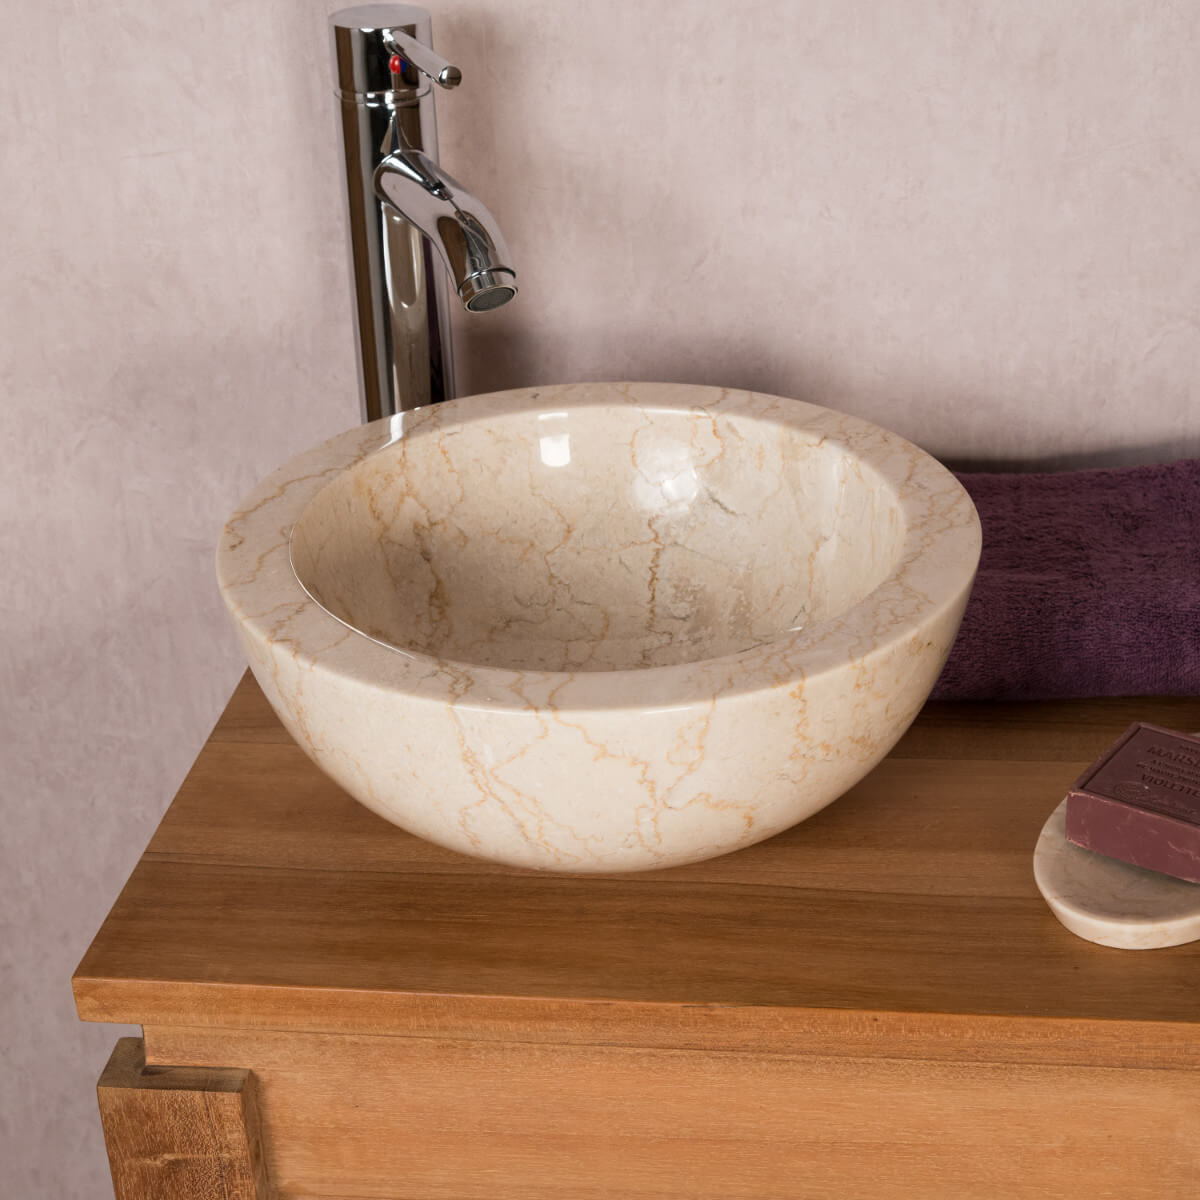 Vasque poser en marbre barcelone ronde cr me d 30 cm for Vasque salle de bain a poser